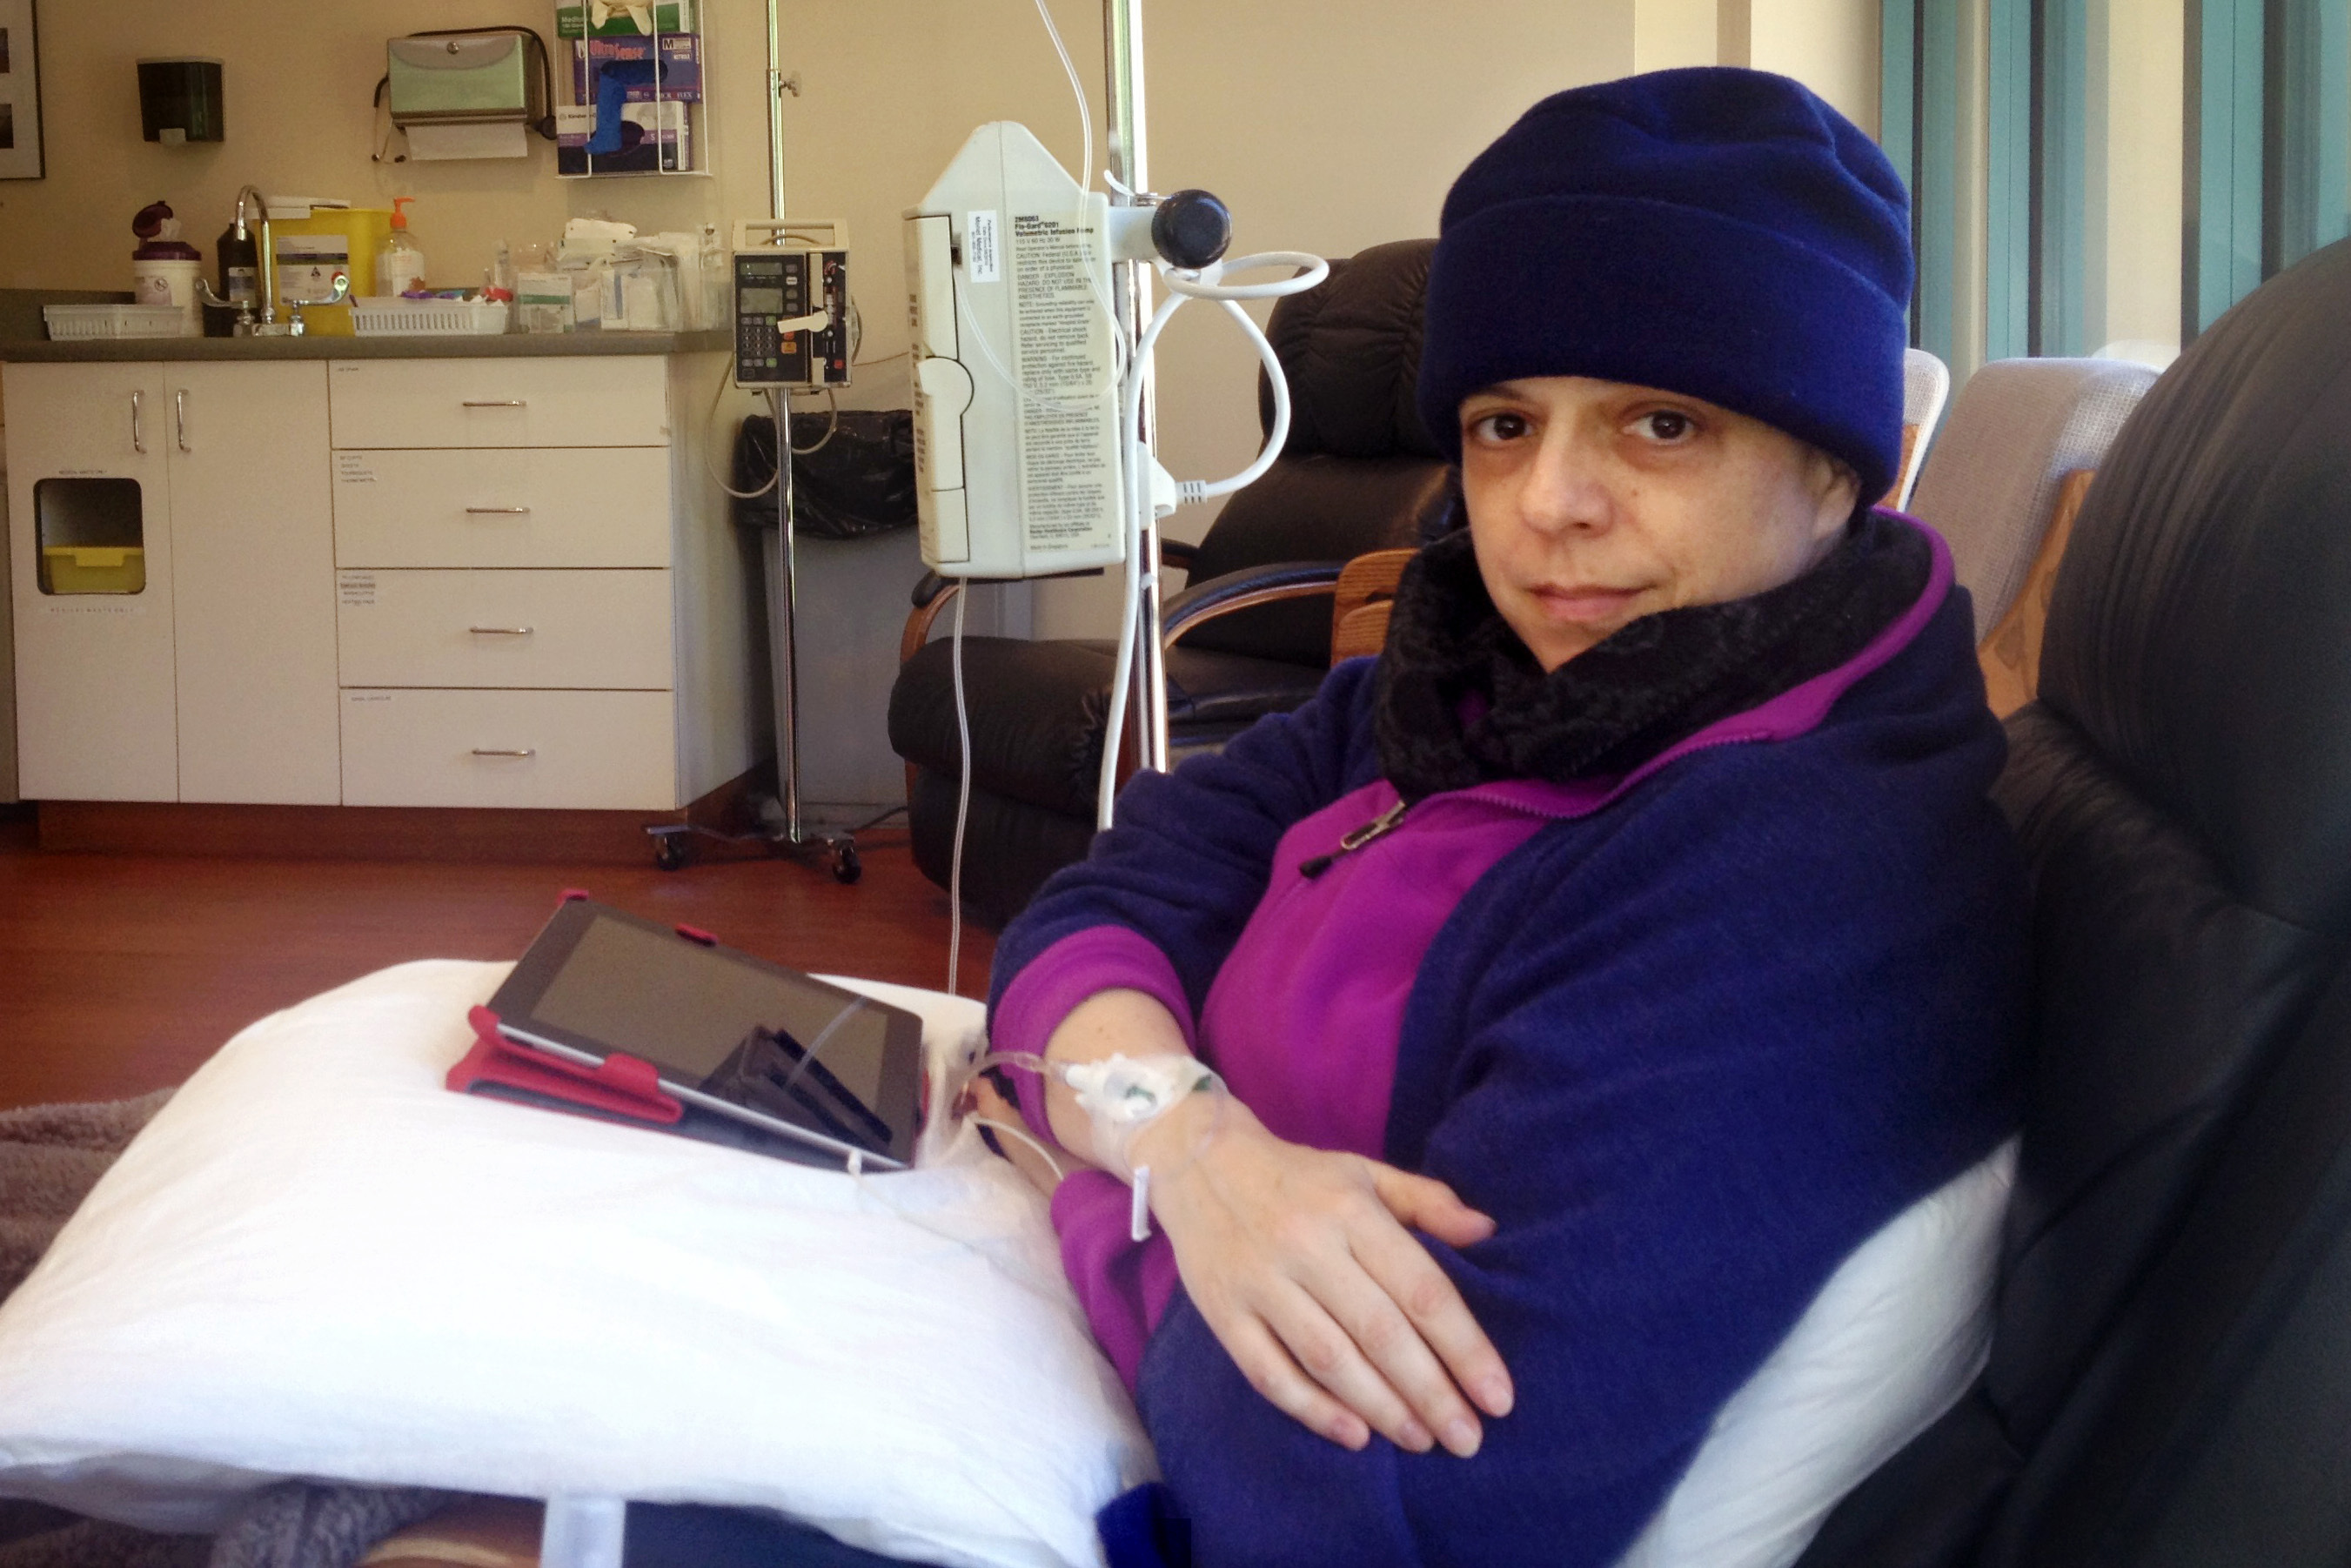 'No One Should Have The Right To Prolong My Death'